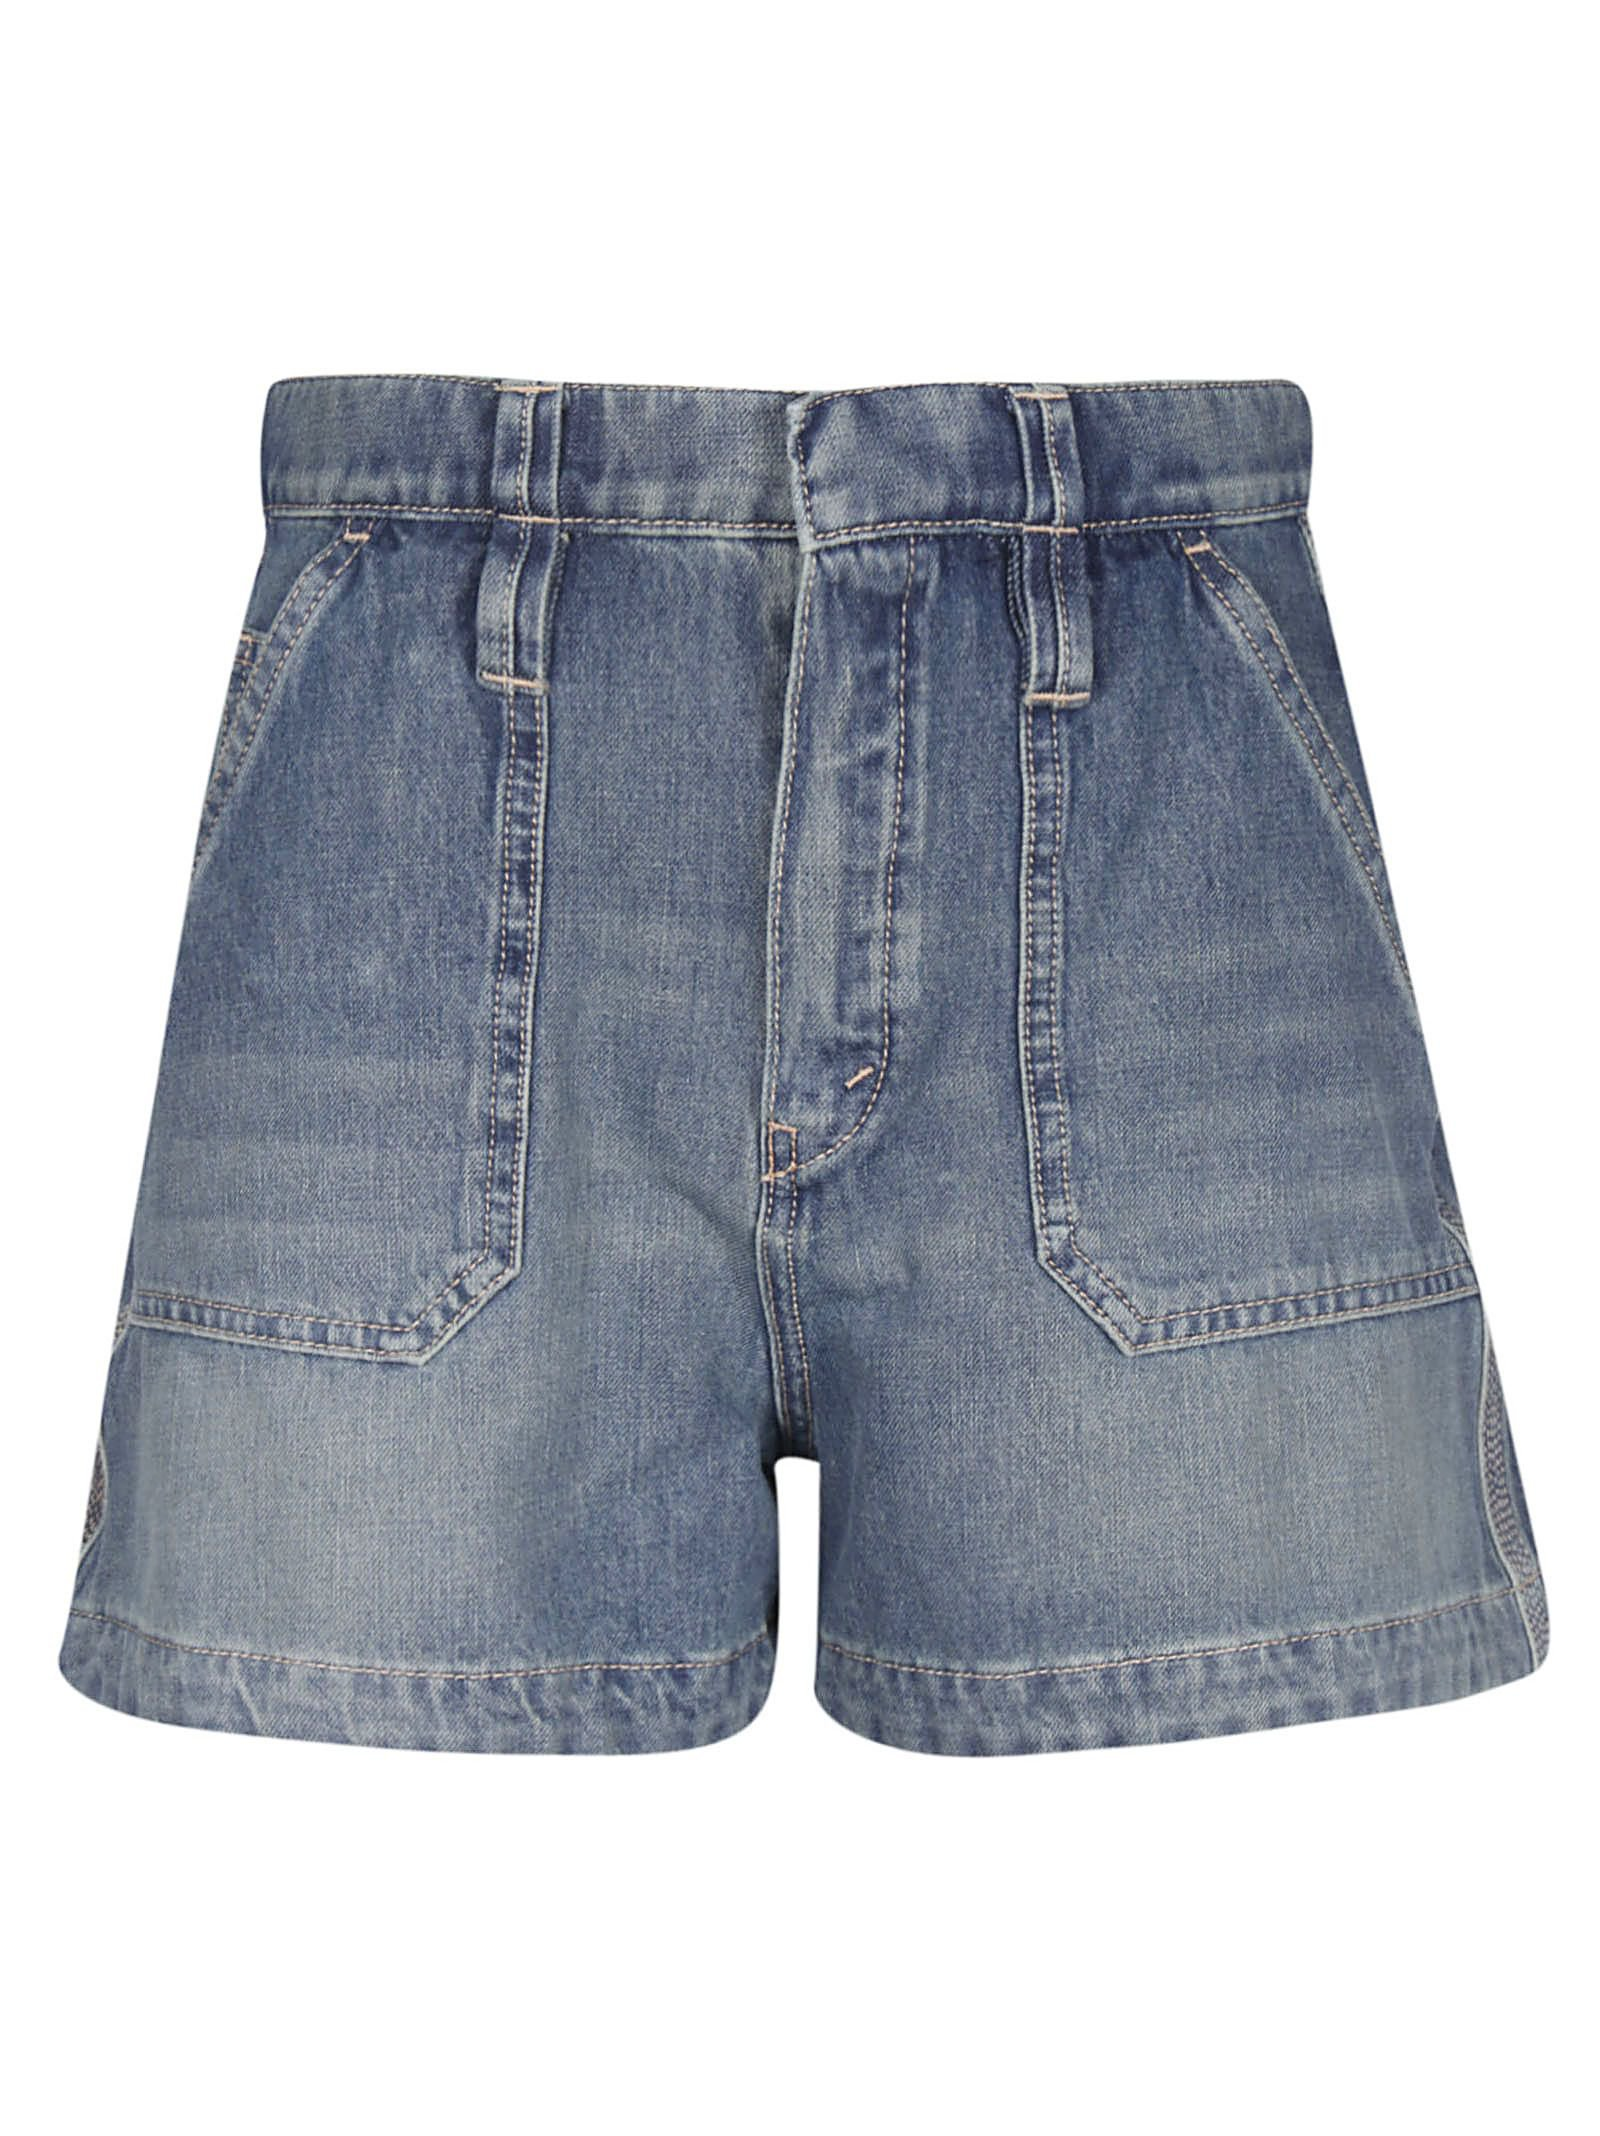 Chloé High Waist Shorts